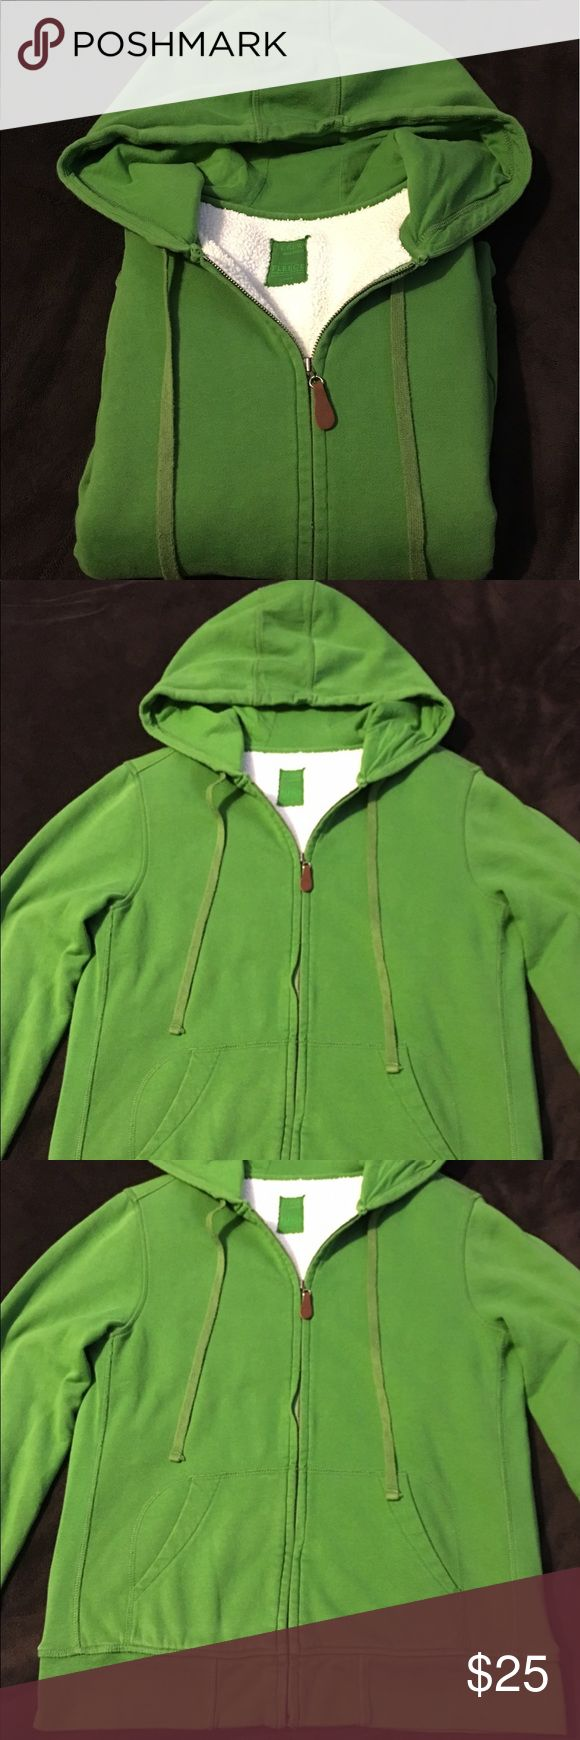 J. Crew Fleece Hoodie J. Crew Fleece Hoodie, Super Soft, Great Condition, Size Large. J. Crew Tops Sweatshirts & Hoodies